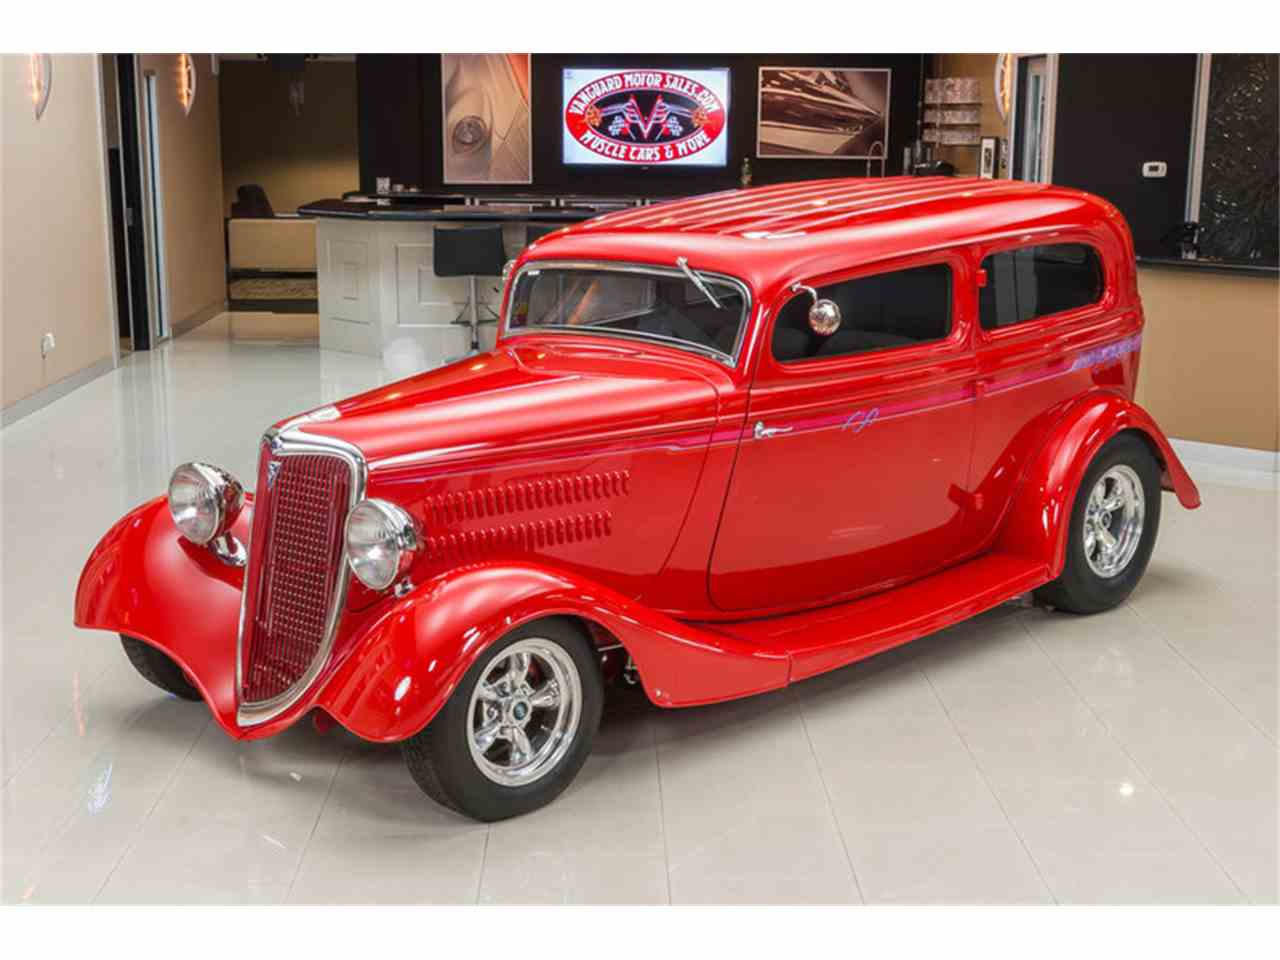 Exelent Hot Rods For Sale In Michigan Crest - Classic Cars Ideas ...